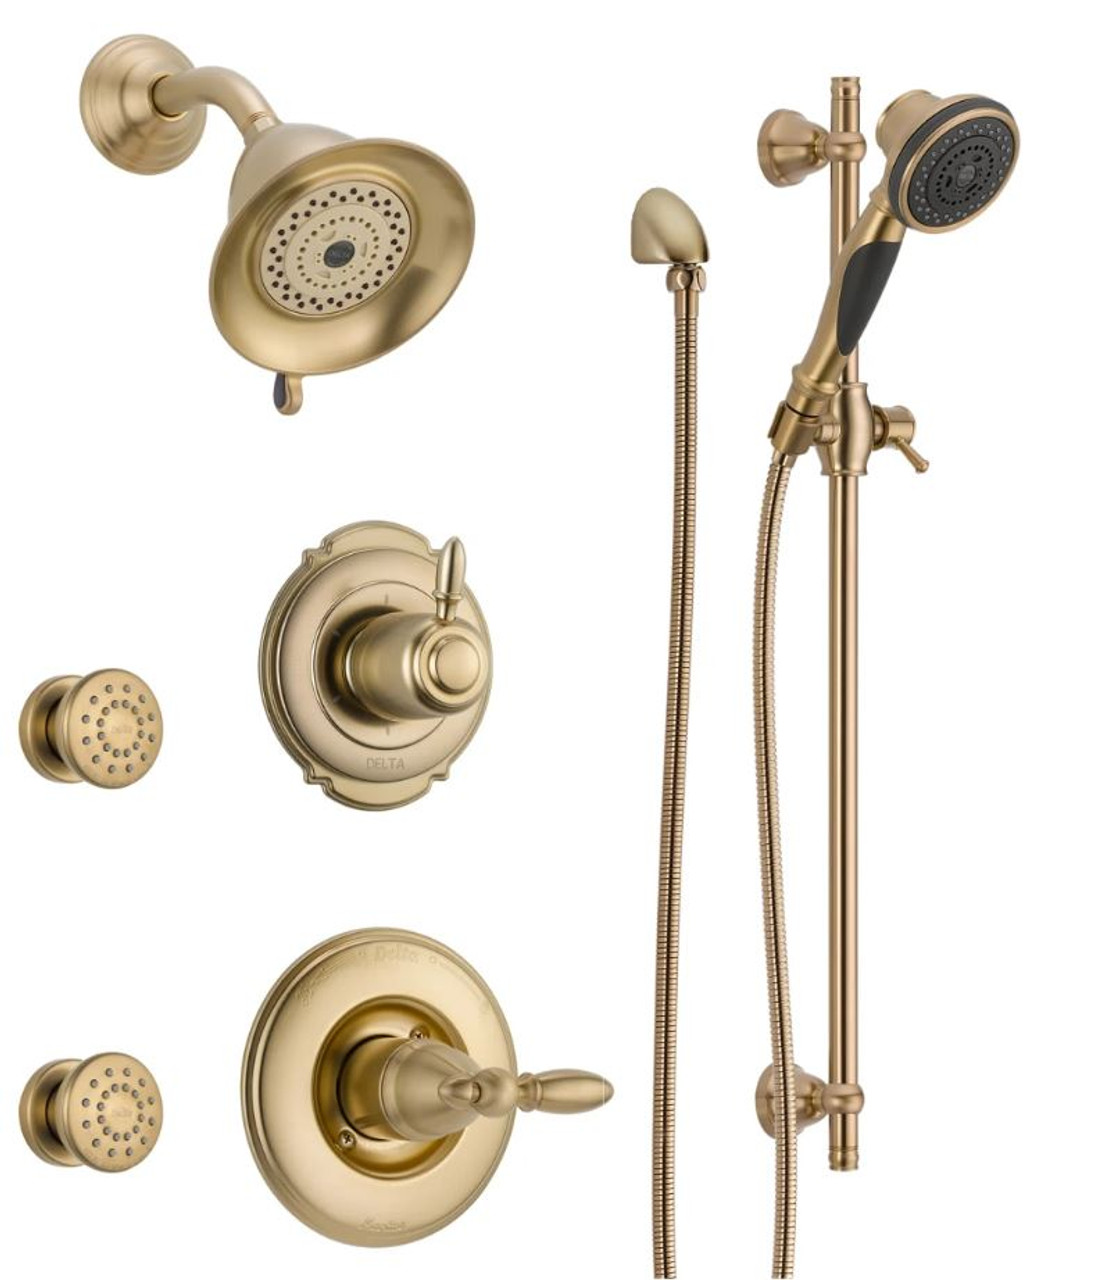 Delta Monitor 14 Series Single Function Pressure Balanced Shower System With Shower Head 2 Body Sprays And Hand Shower Includes Rough In Valves Victorian Royal Bath Place